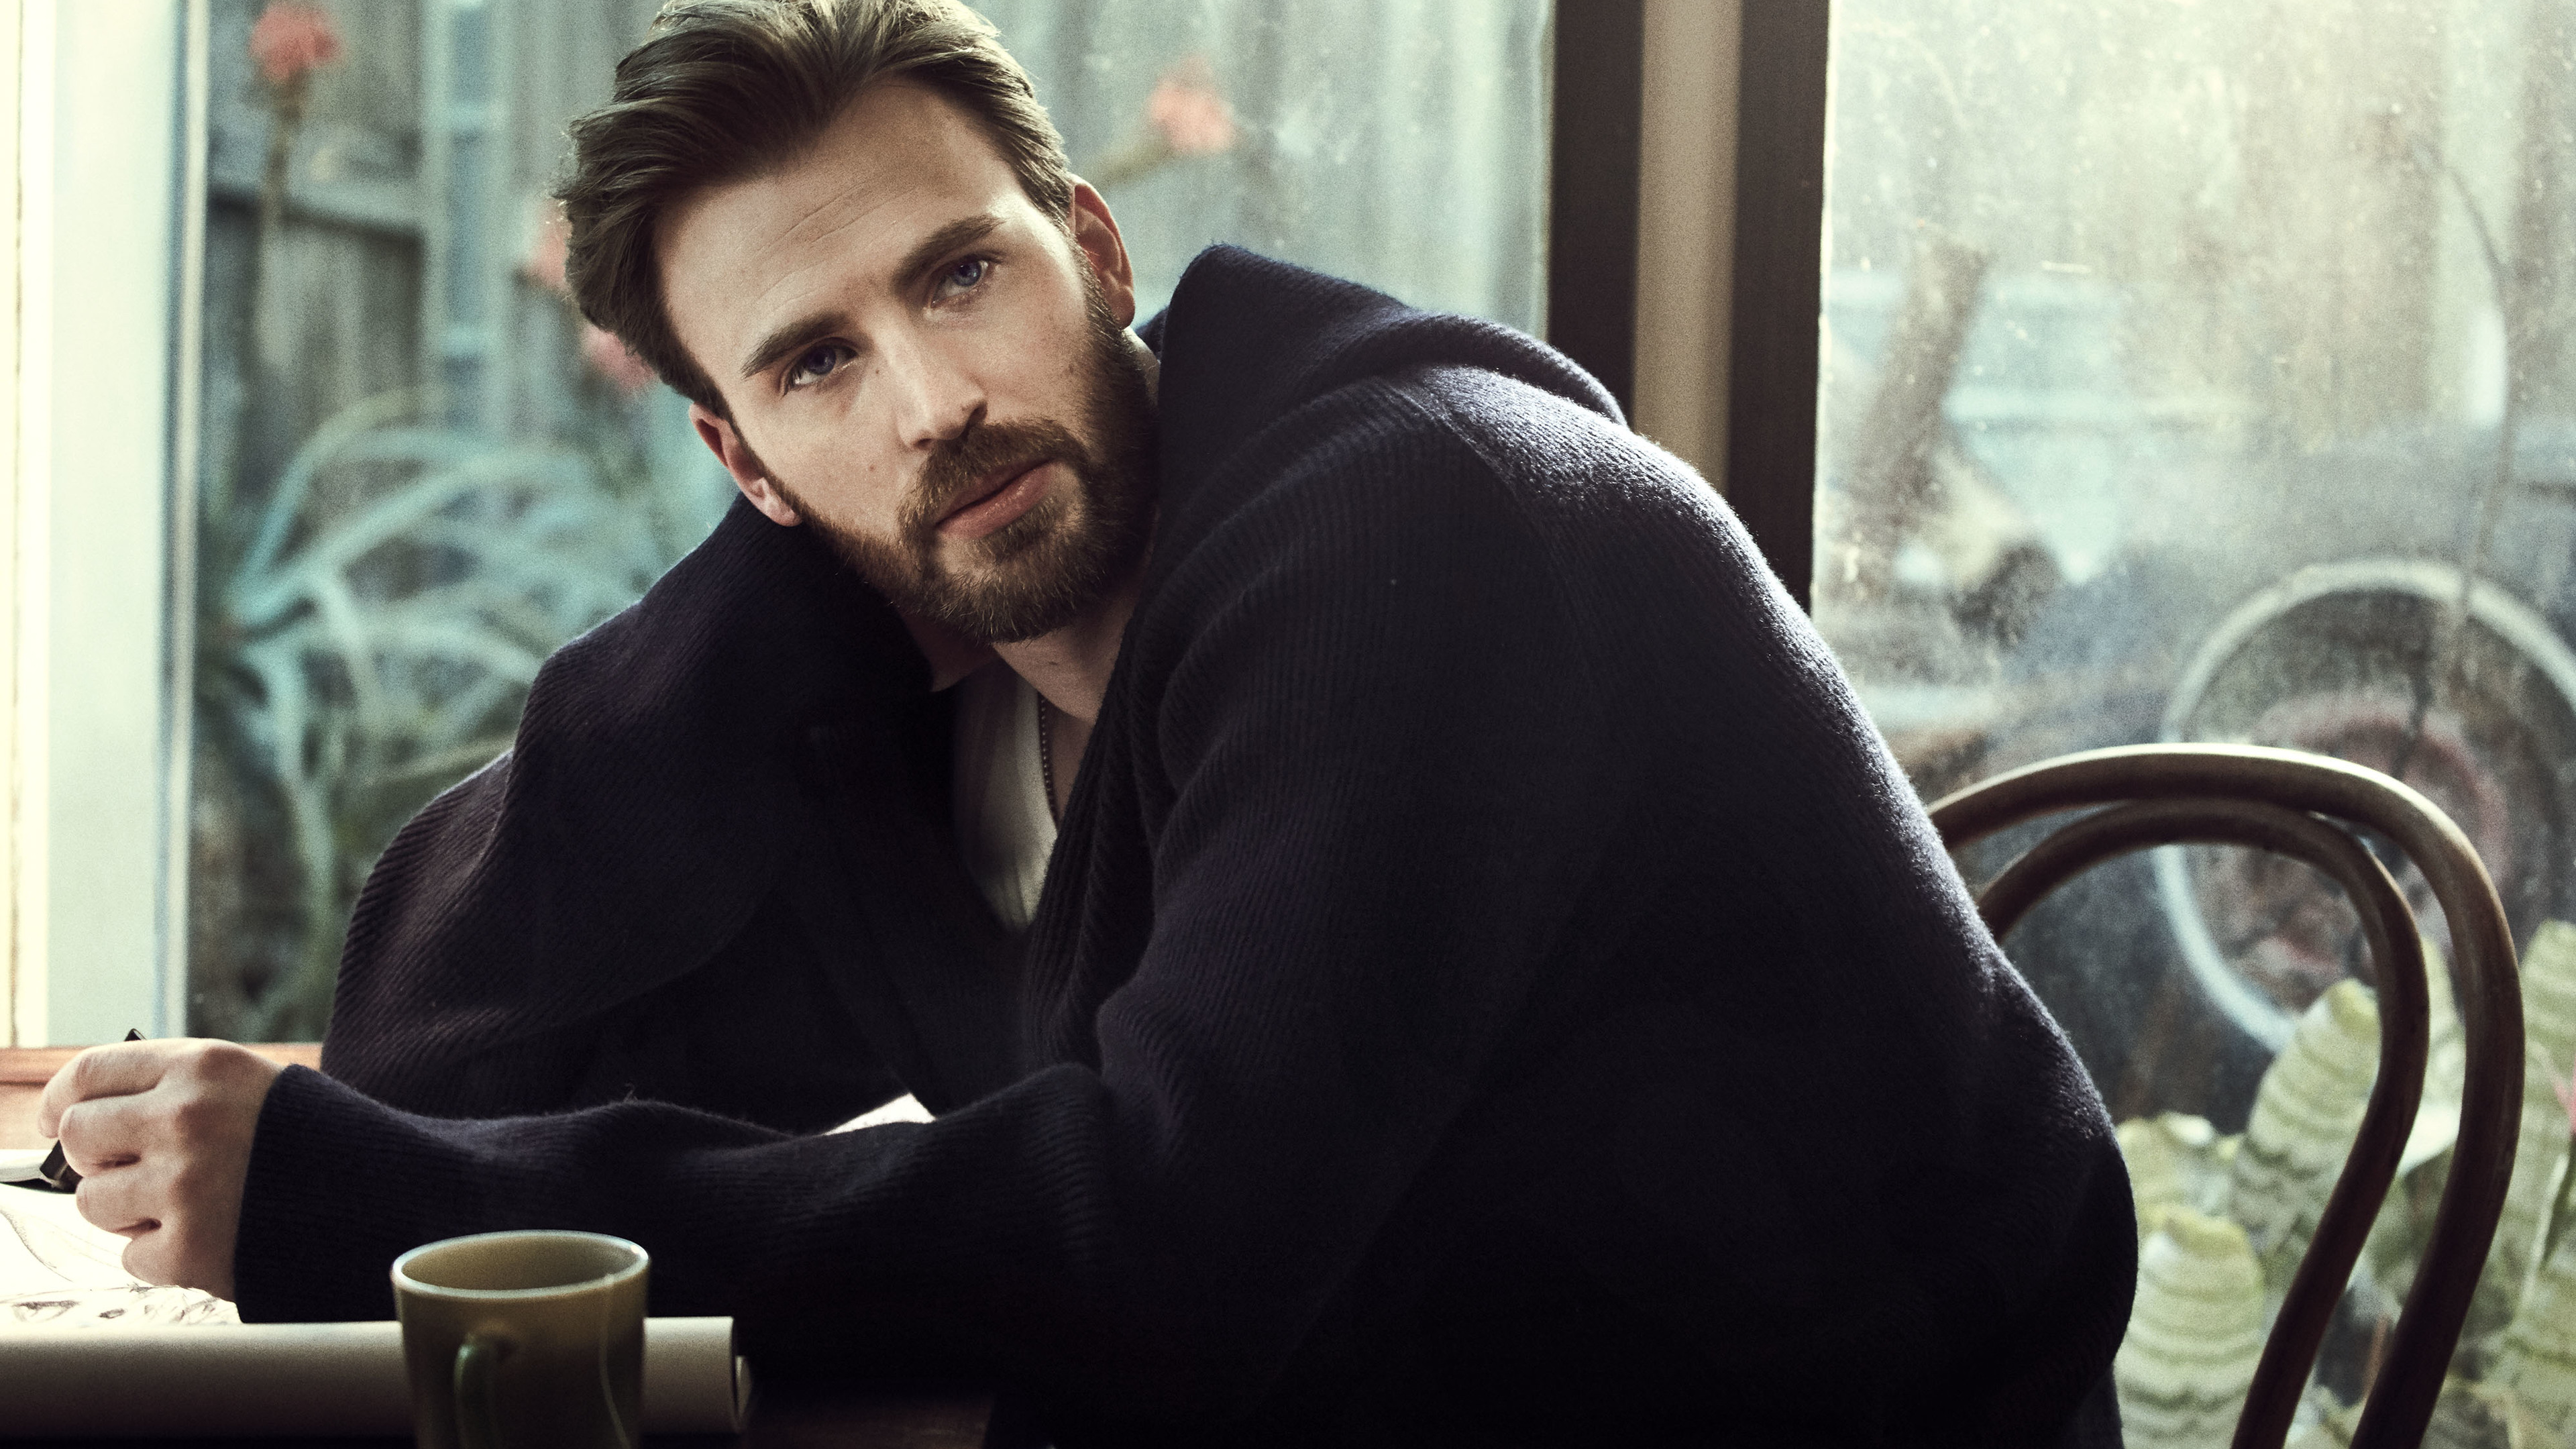 chris evans for esquire us 2019 1536946039 - Chris Evans For Esquire US 2019 - male celebrities wallpapers, hd-wallpapers, chris evans wallpapers, celebrities wallpapers, boys wallpapers, 4k-wallpapers